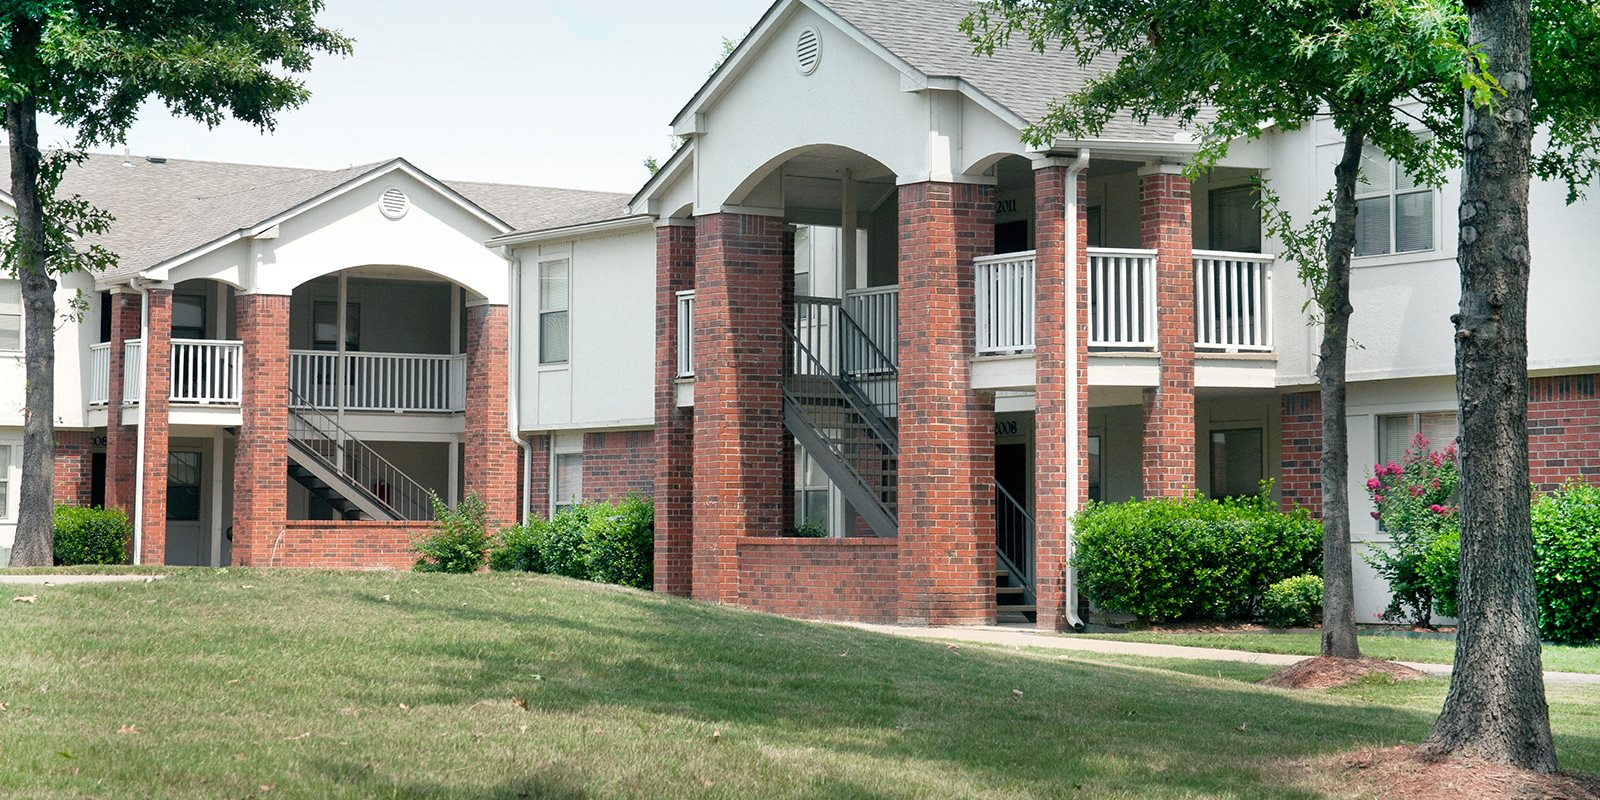 Westlake apartments in conway ar for 3 bedroom apartments in conway ar